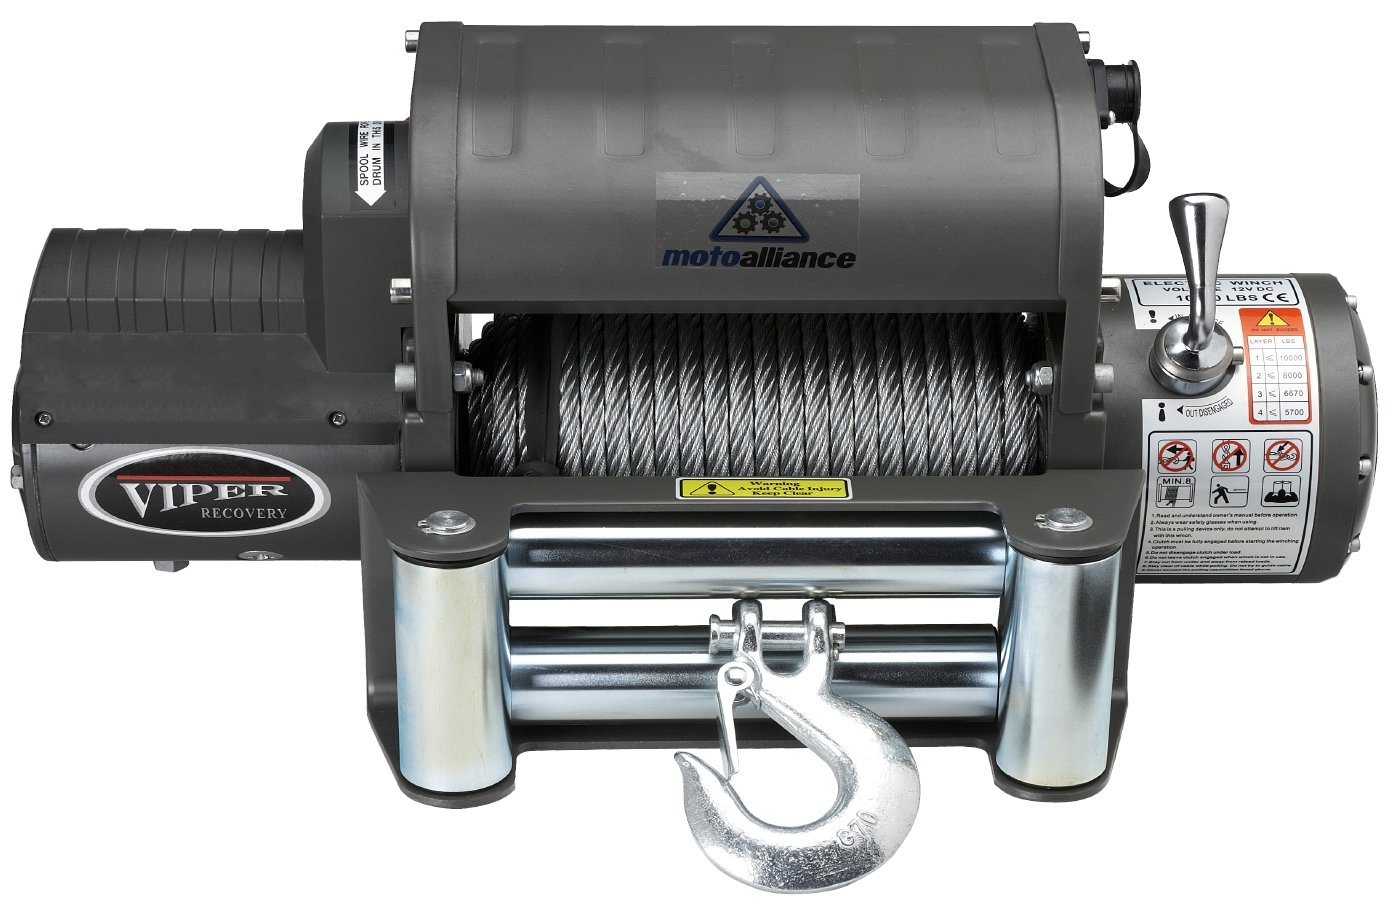 VIPER Winch 12000lb, Steel cable, wireless remote, integrated contactor by MotoAlliance (Image #1)